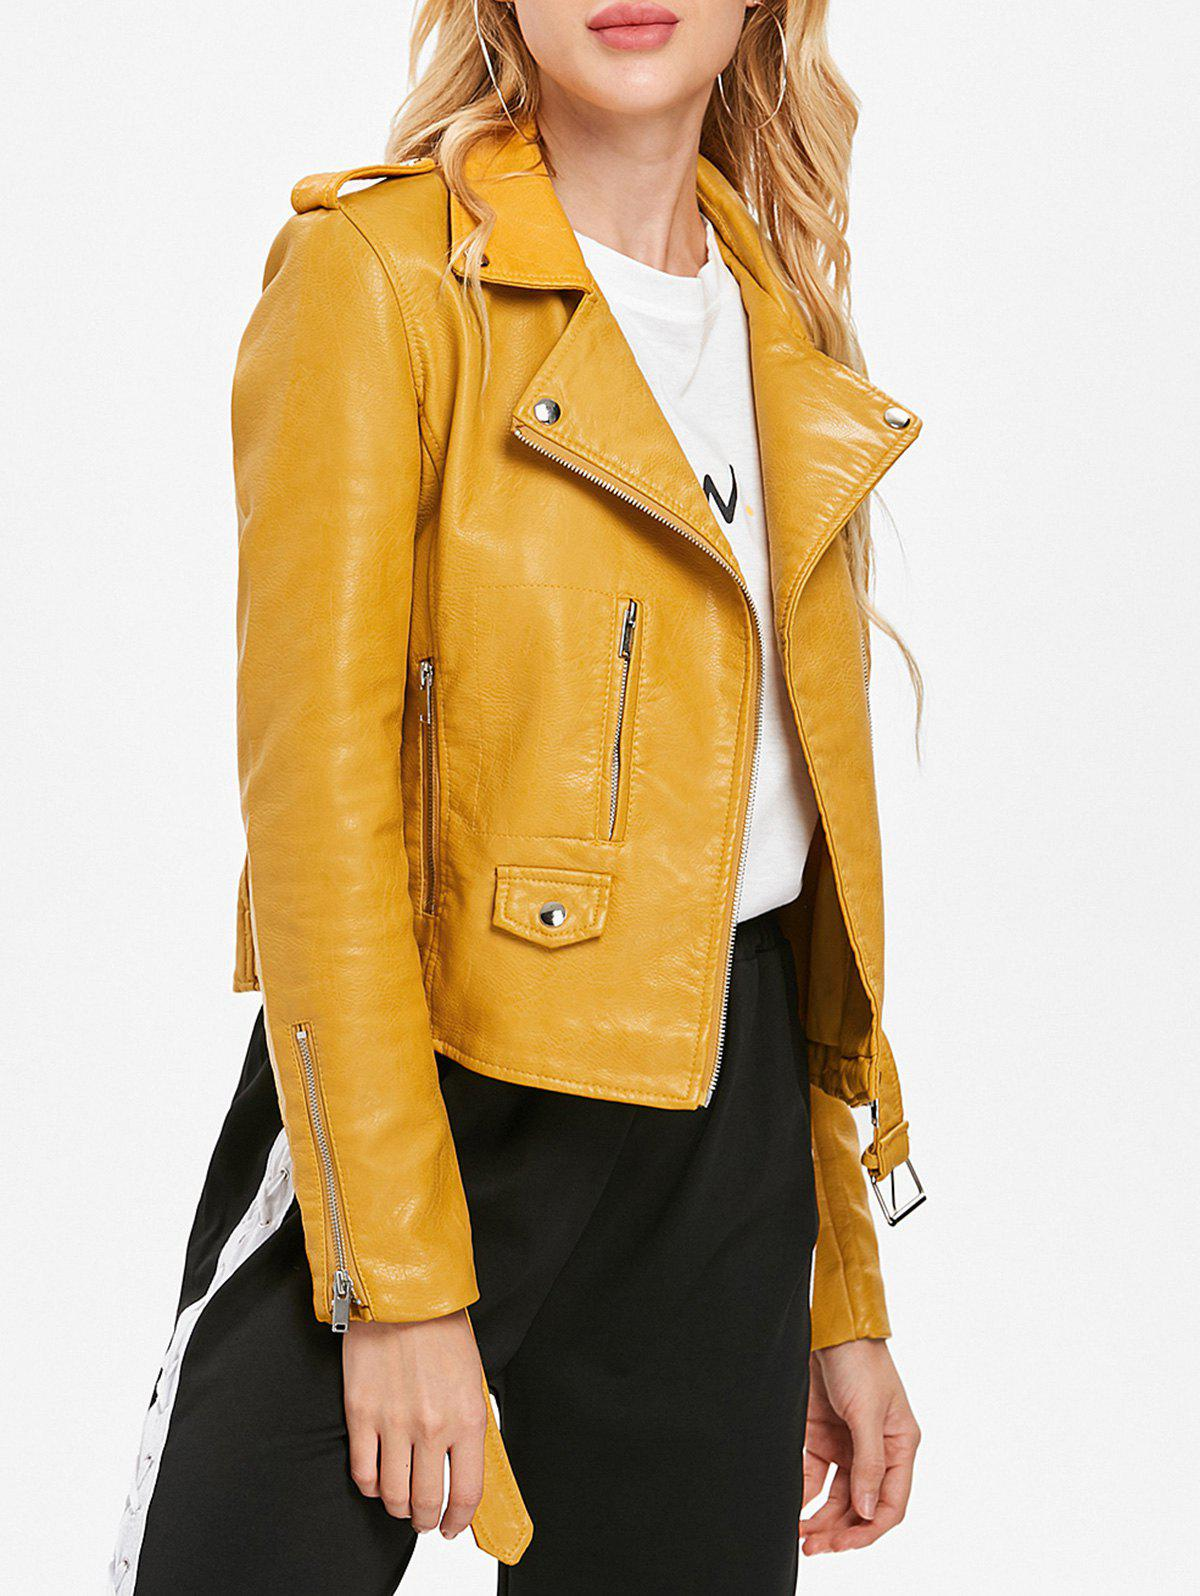 https://www.dresslily.com/faux-leather-oblique-zipper-biker-product3195870.html?lkid=15587927